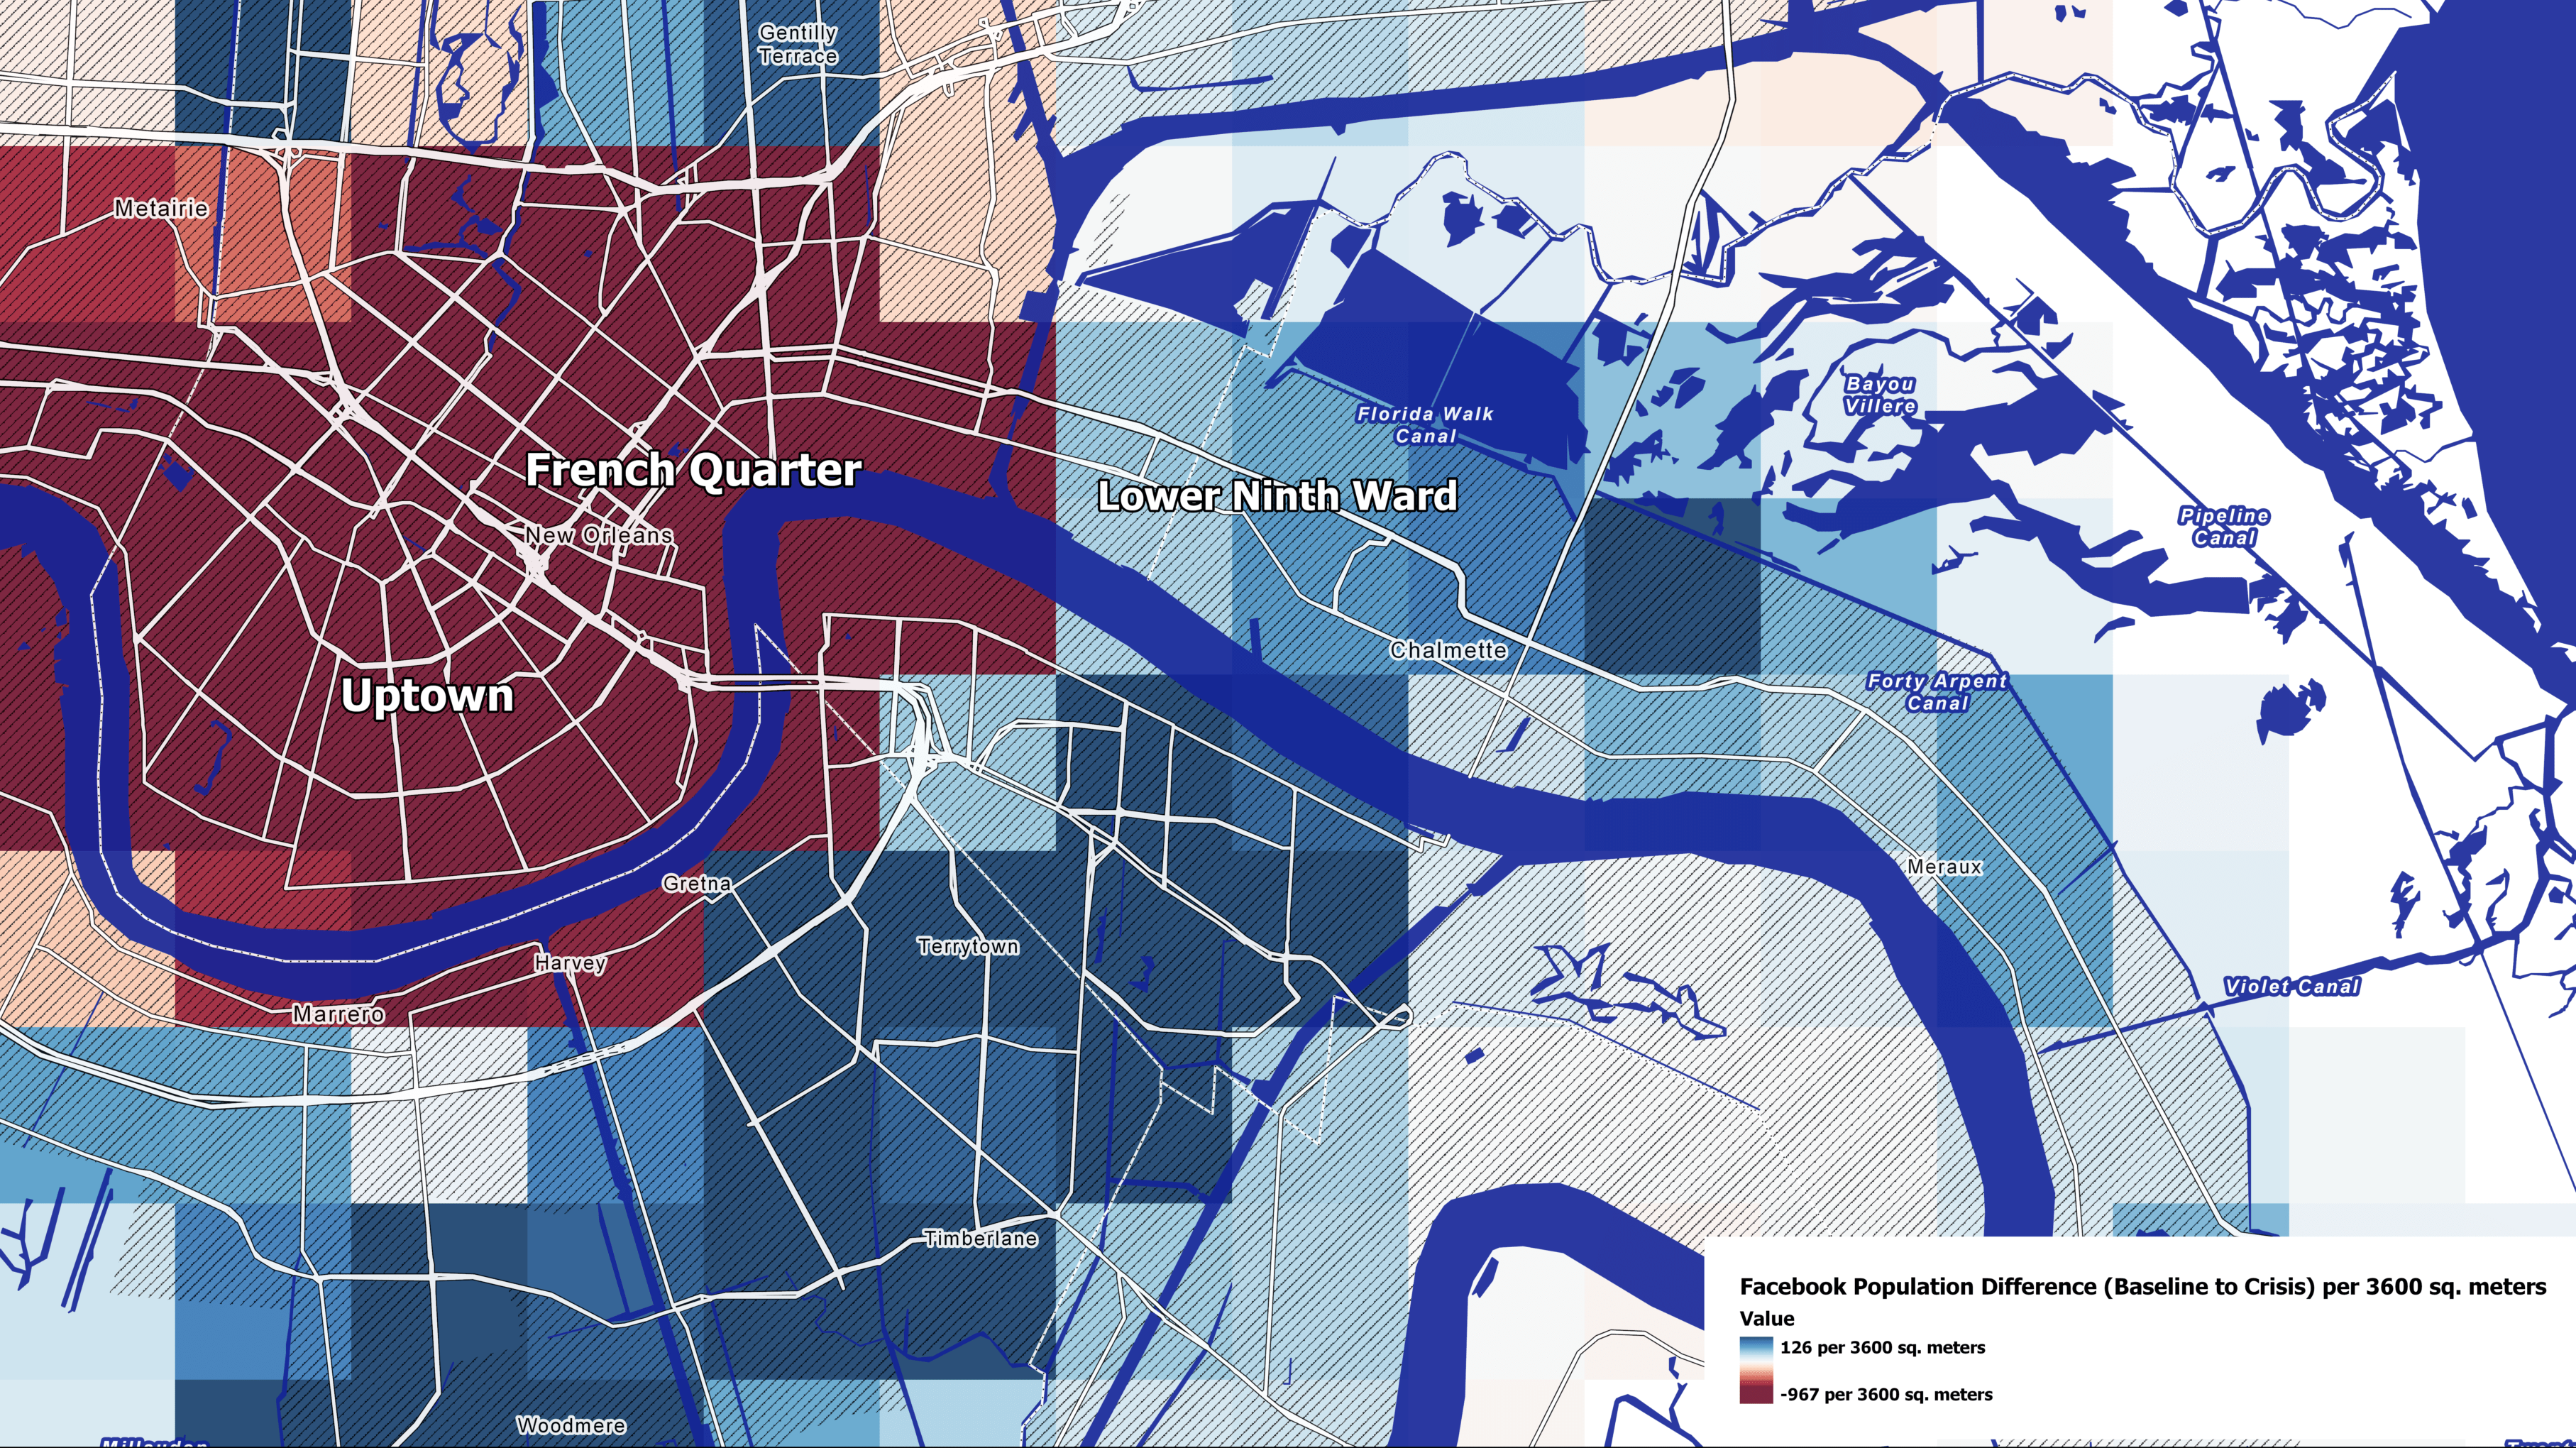 new orleans 9th ward map As Storm Threatens New Orleans Lower Ninth Ward Residents Stay Put new orleans 9th ward map